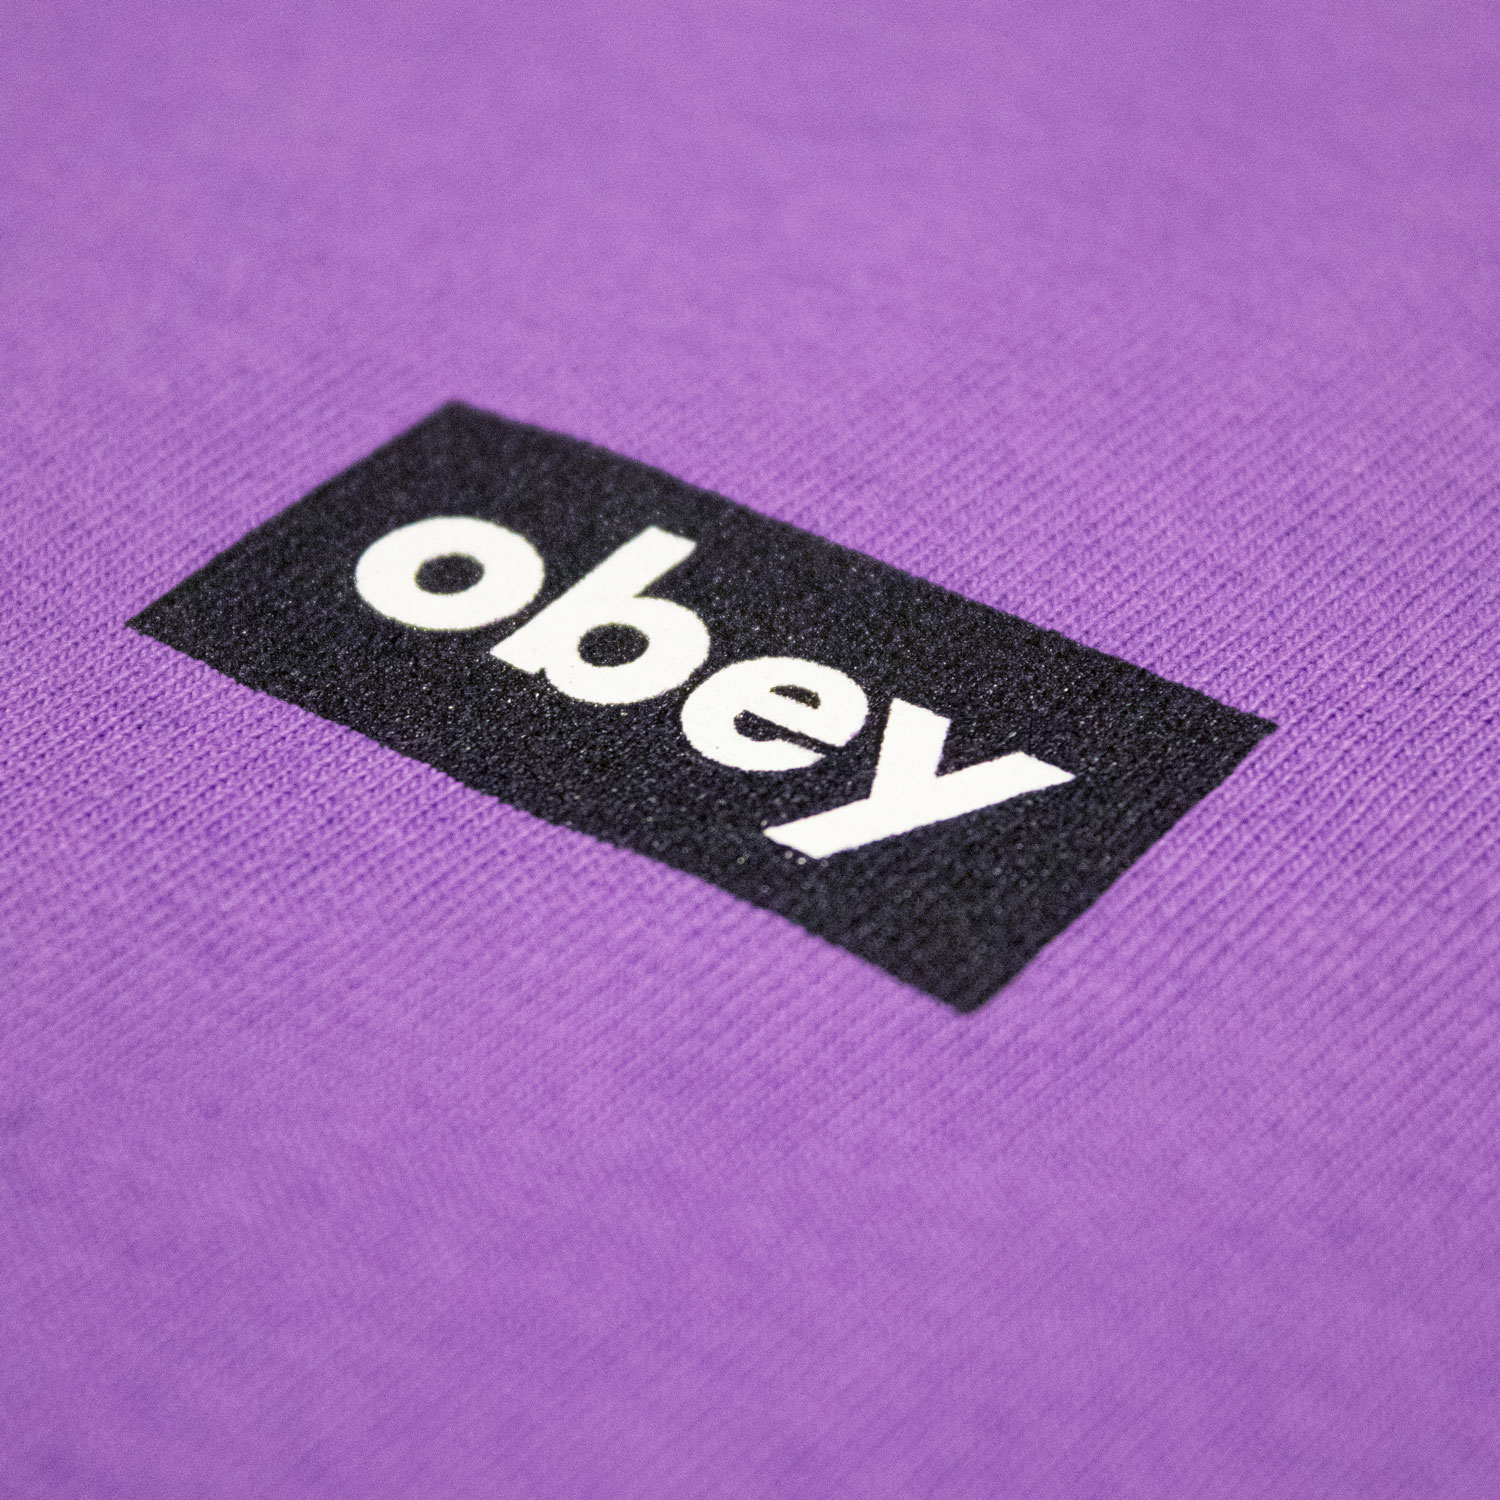 Obey Black Bar Tee - Orchid 2